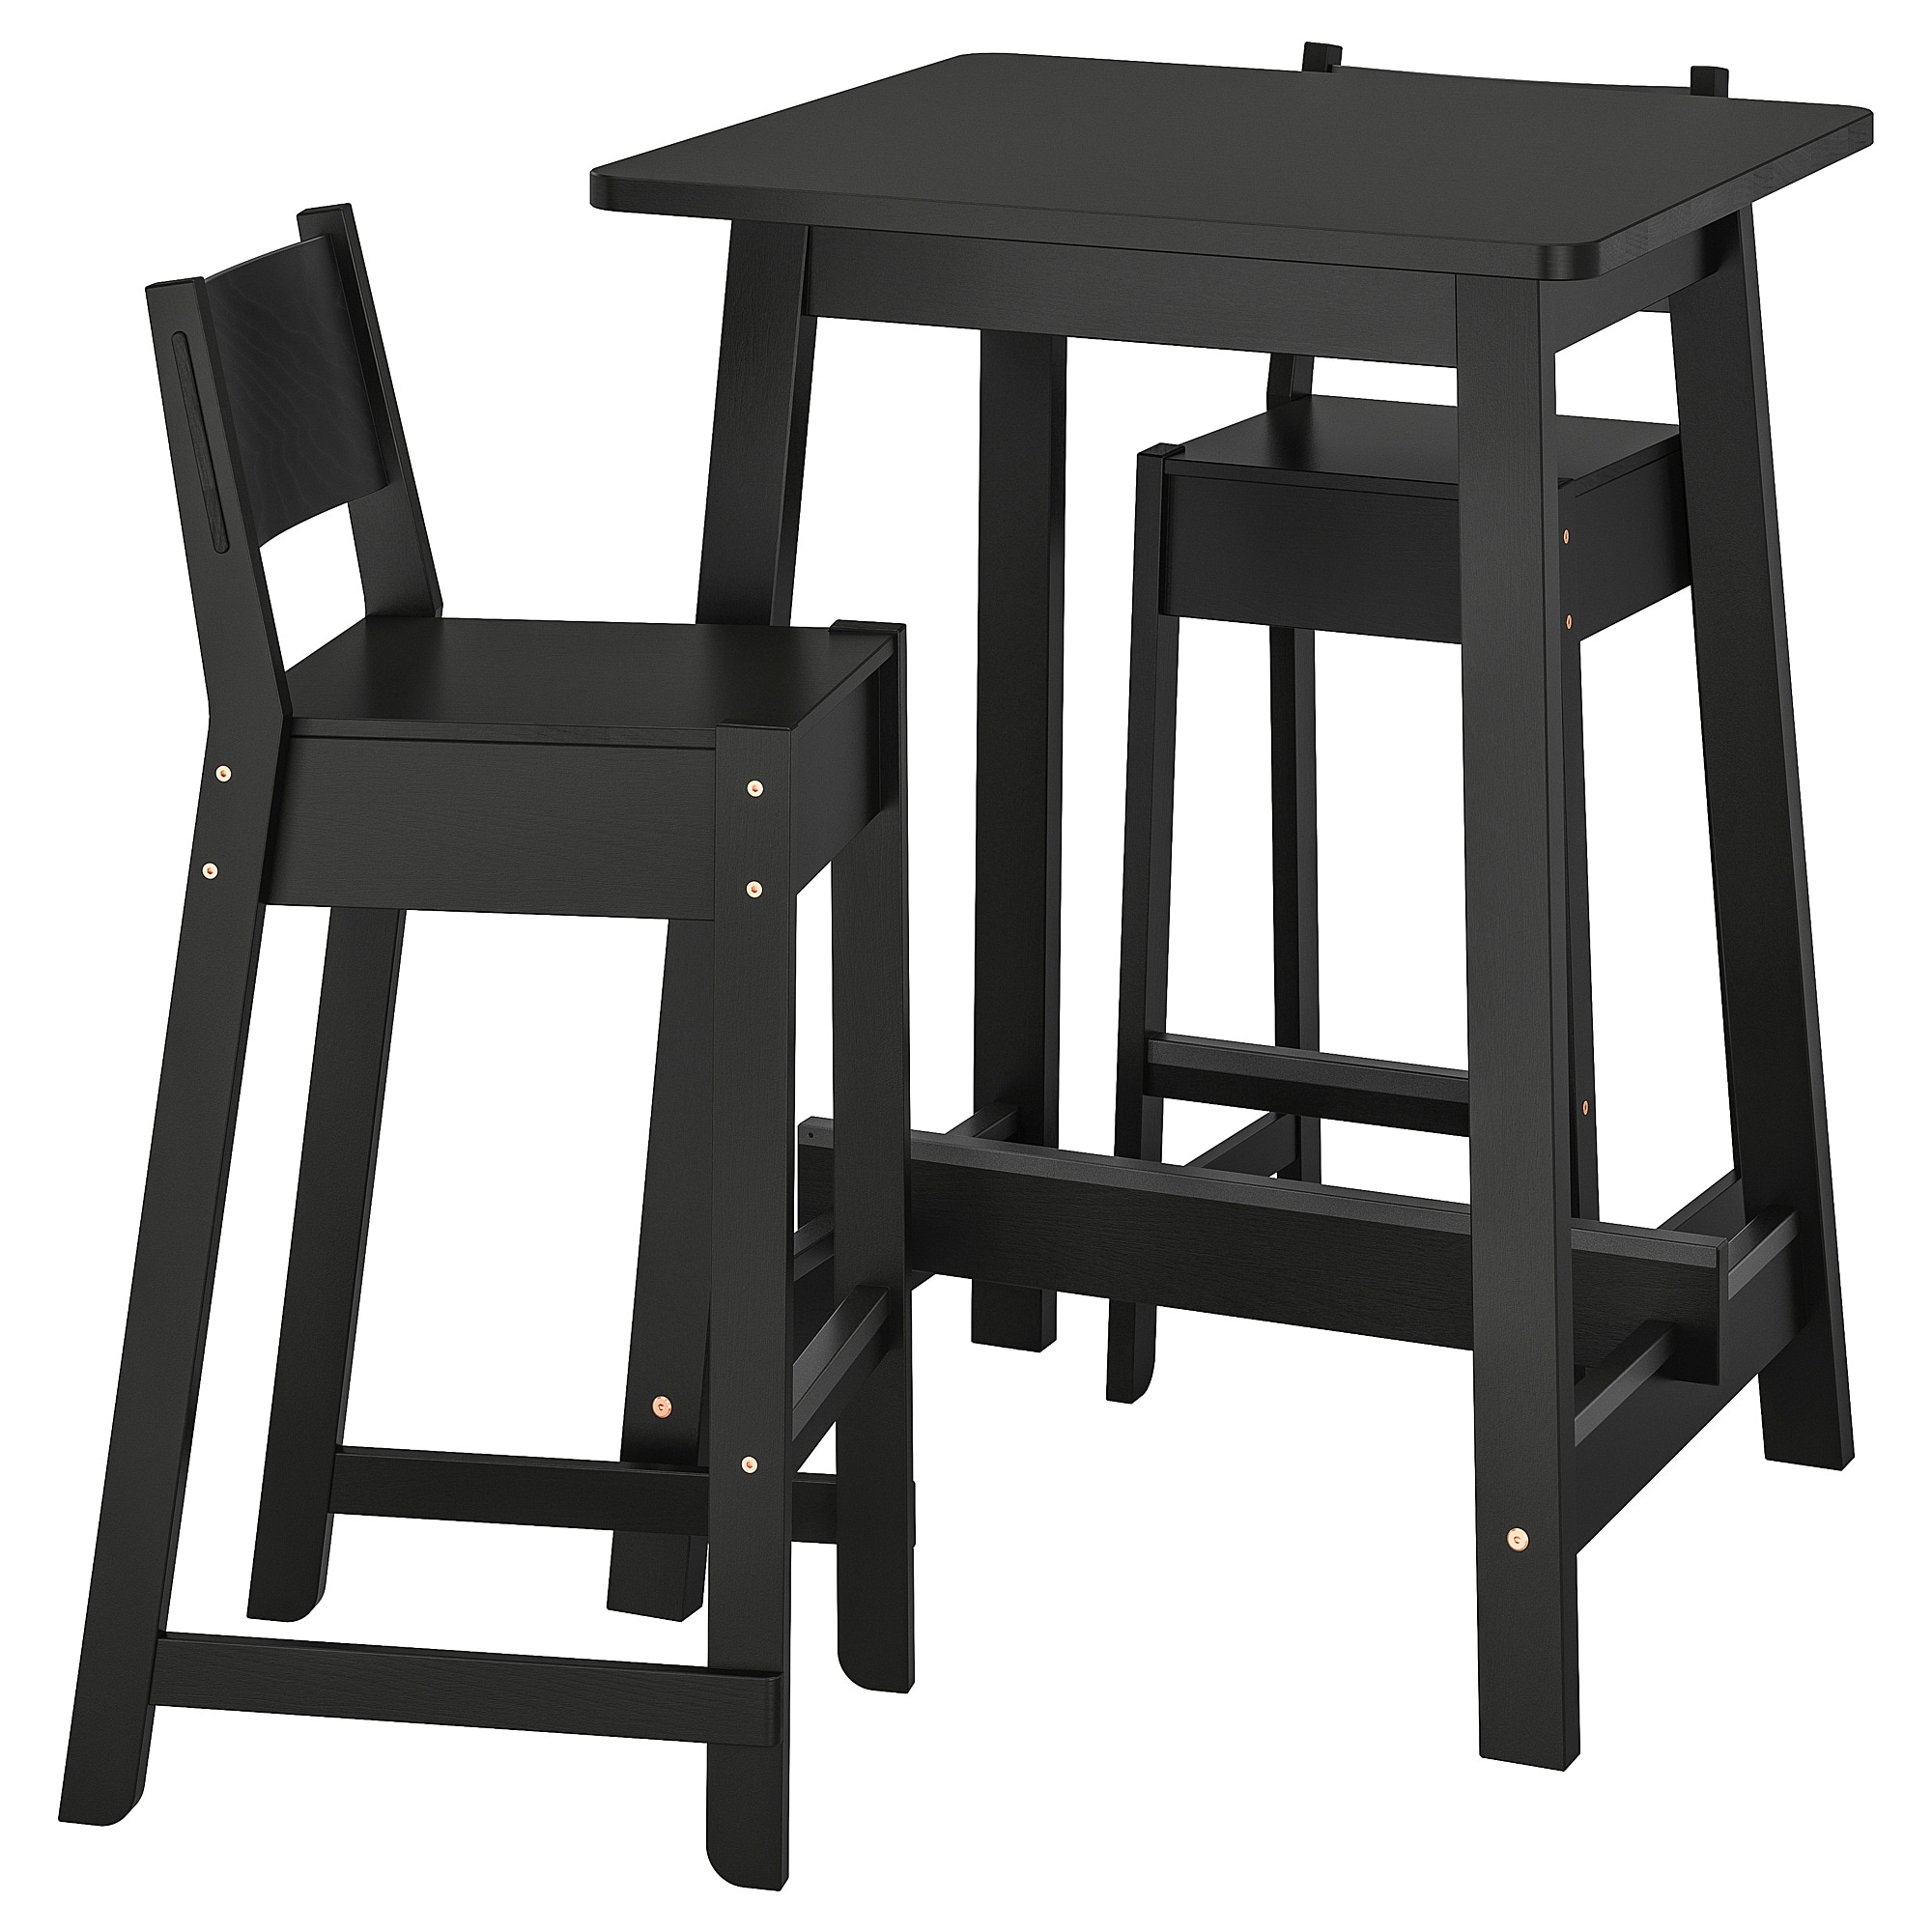 brand new ef0a8 2dae6 Bar table and 2 bar stools NORRÅKER / NORRÅKER black, black